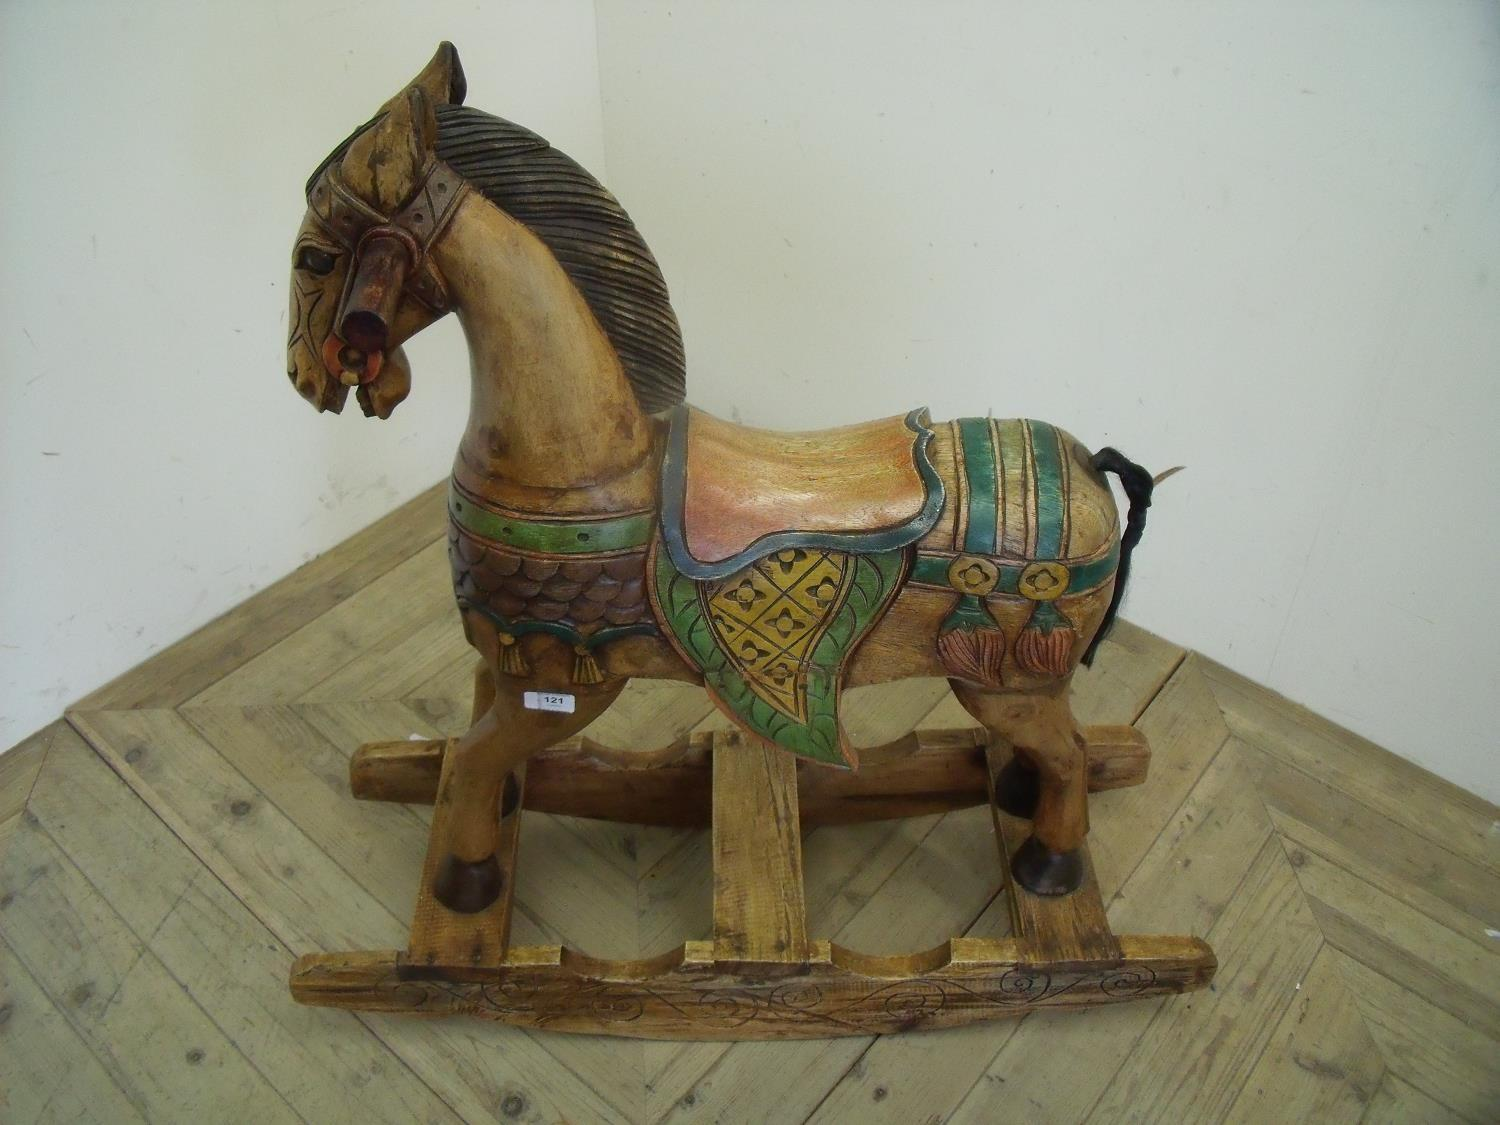 Lot 121 - Carved wood eastern style rocking horse (88cm high)